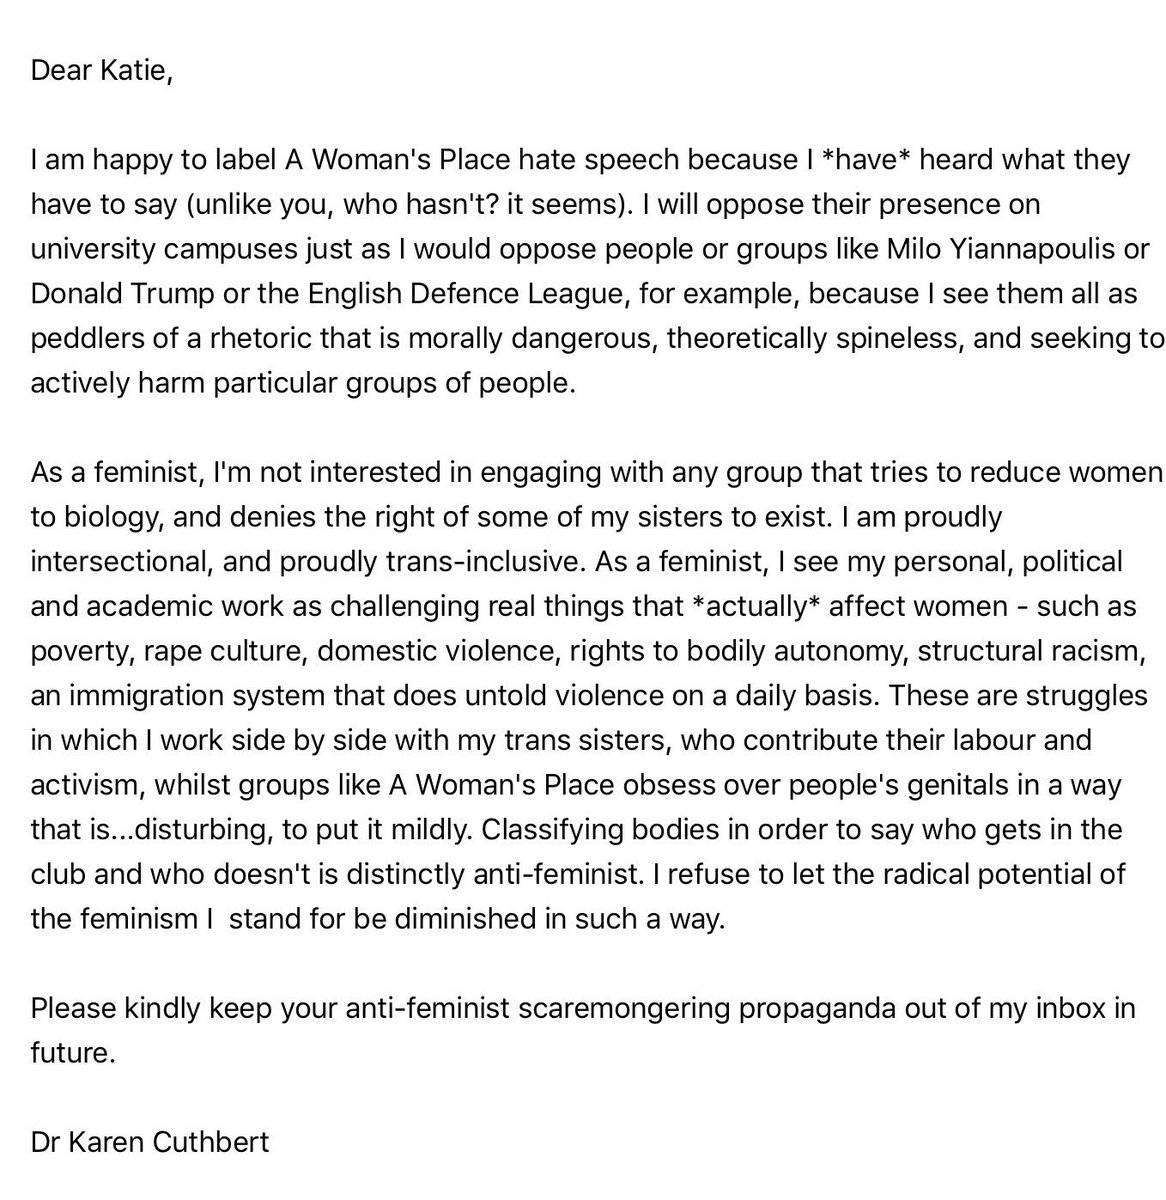 RT @karencuthbert: My response... https://t.co/RotSiNLeJ8